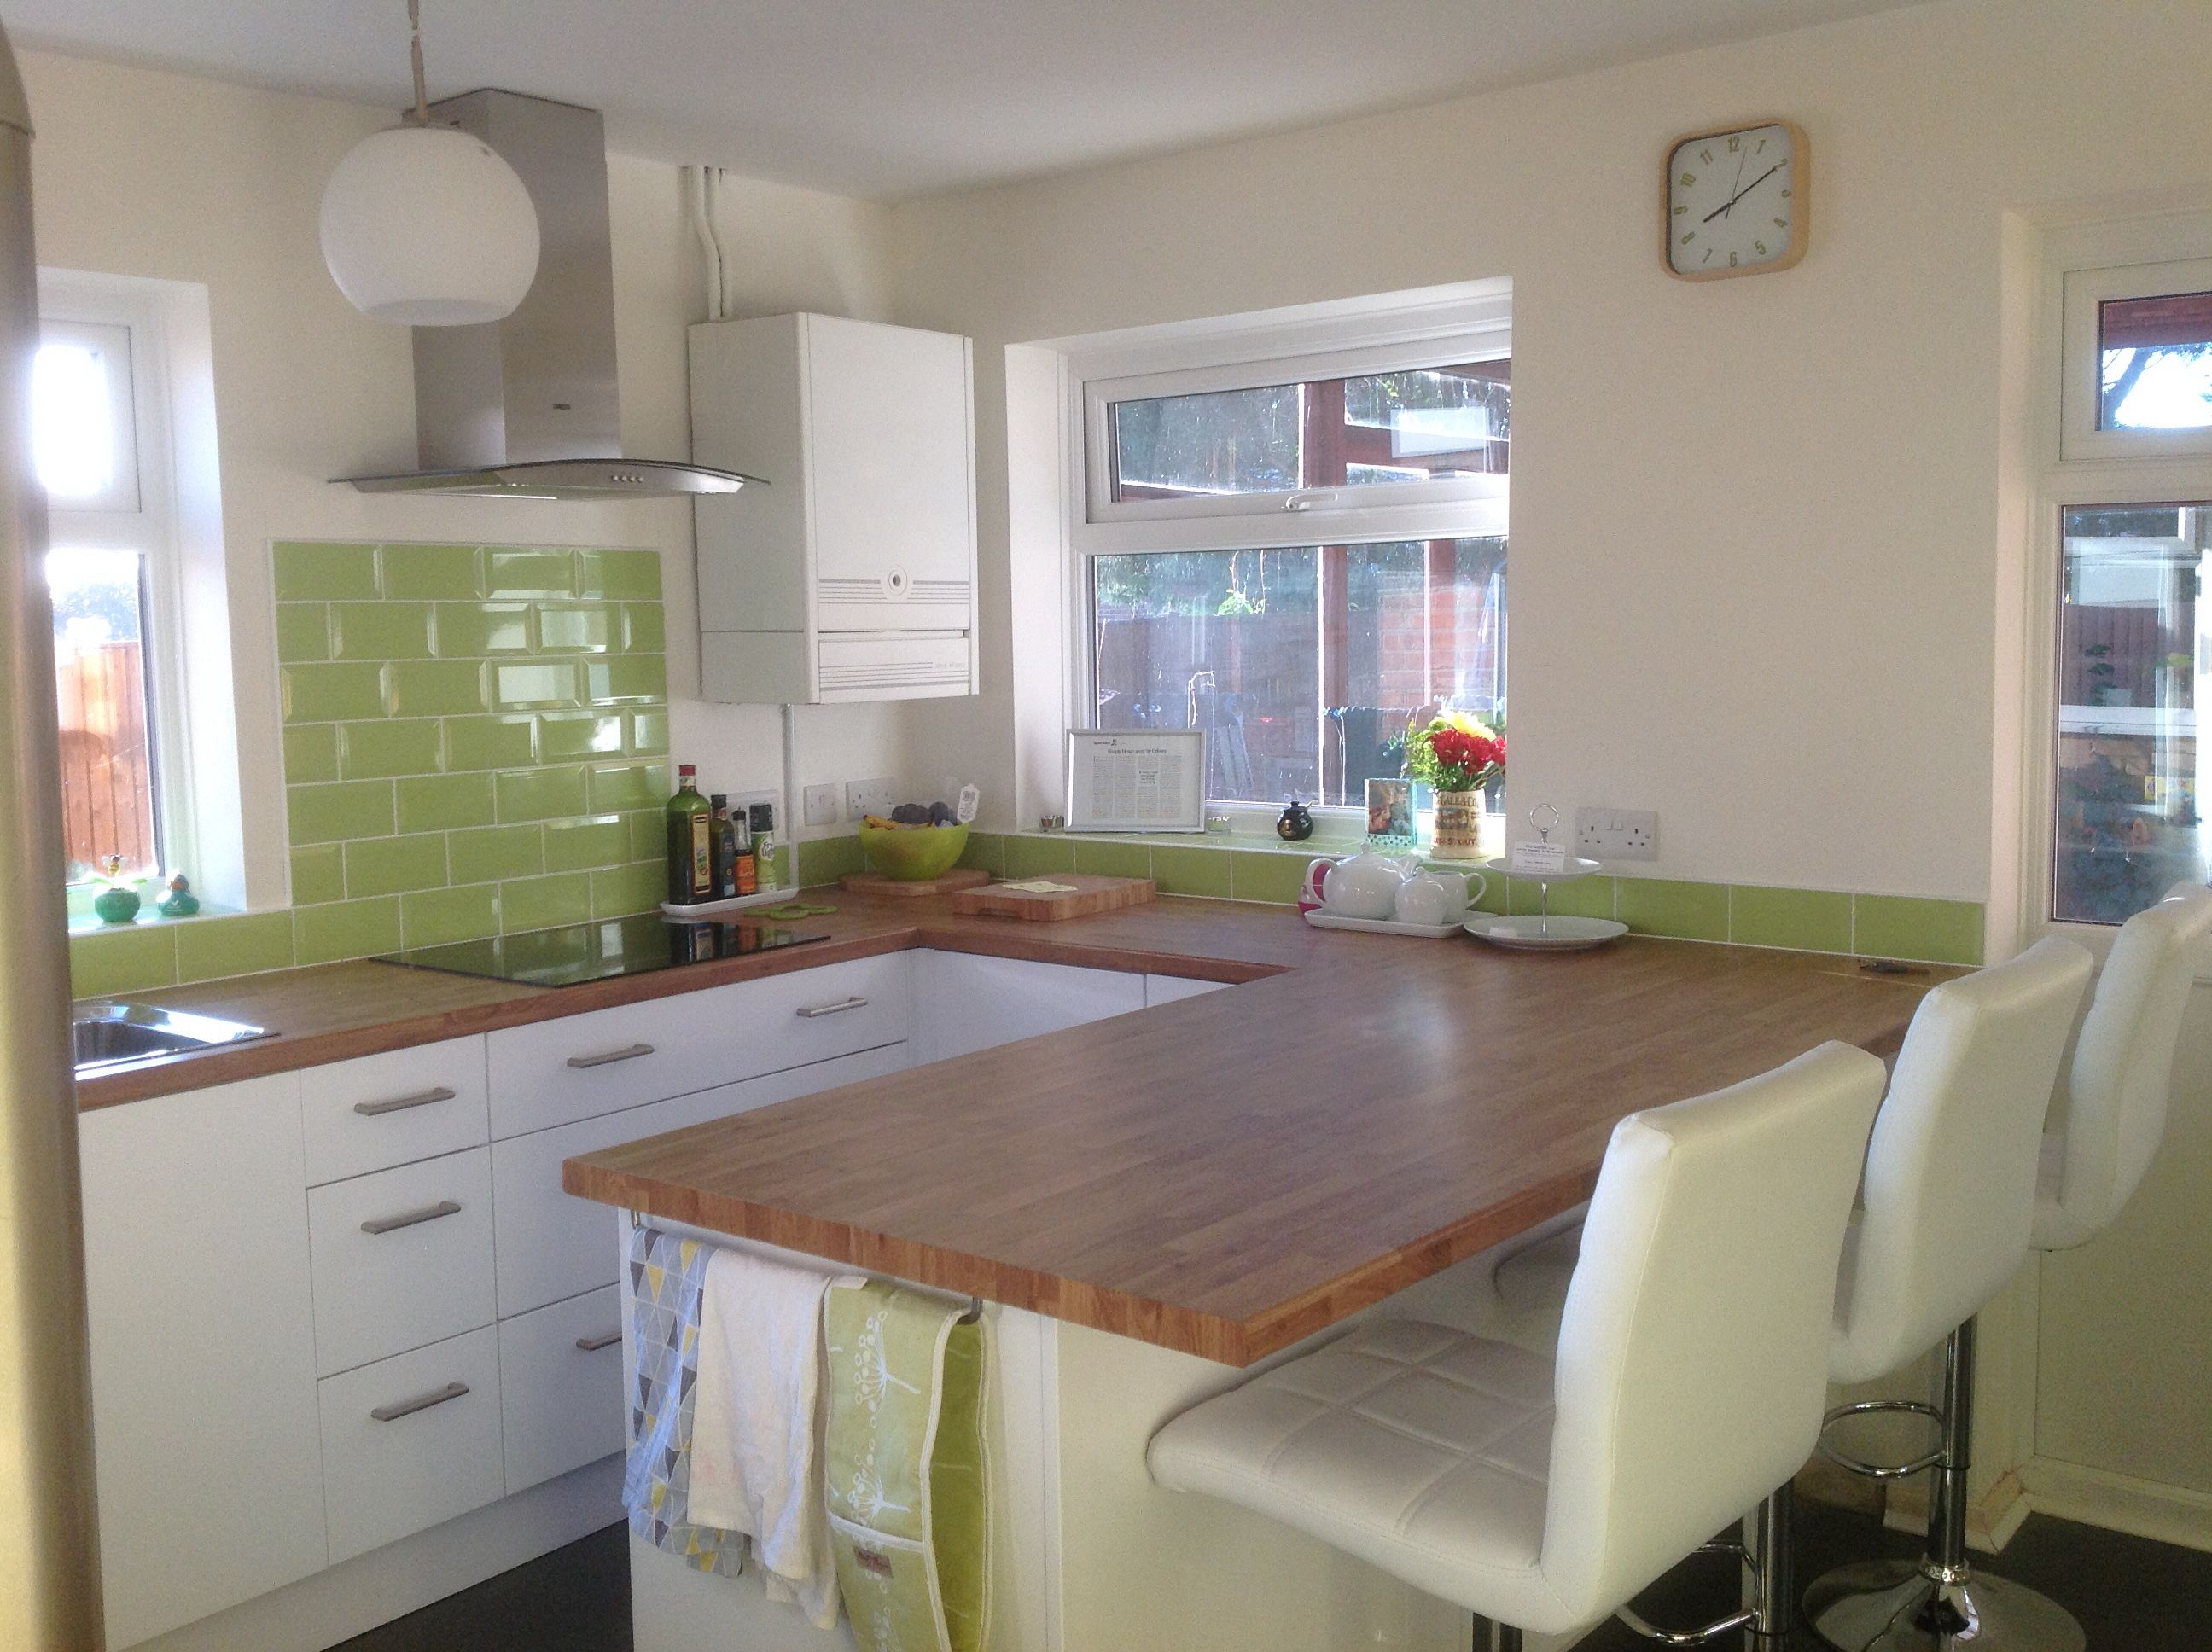 Wickes Houston With Colmar Oak Work Tops. Ikea Lighting. Bar Stools From  Atlantic Shopping. Lime Green Metro Tiles From Topps. Dulux Jasmine White  Walls.